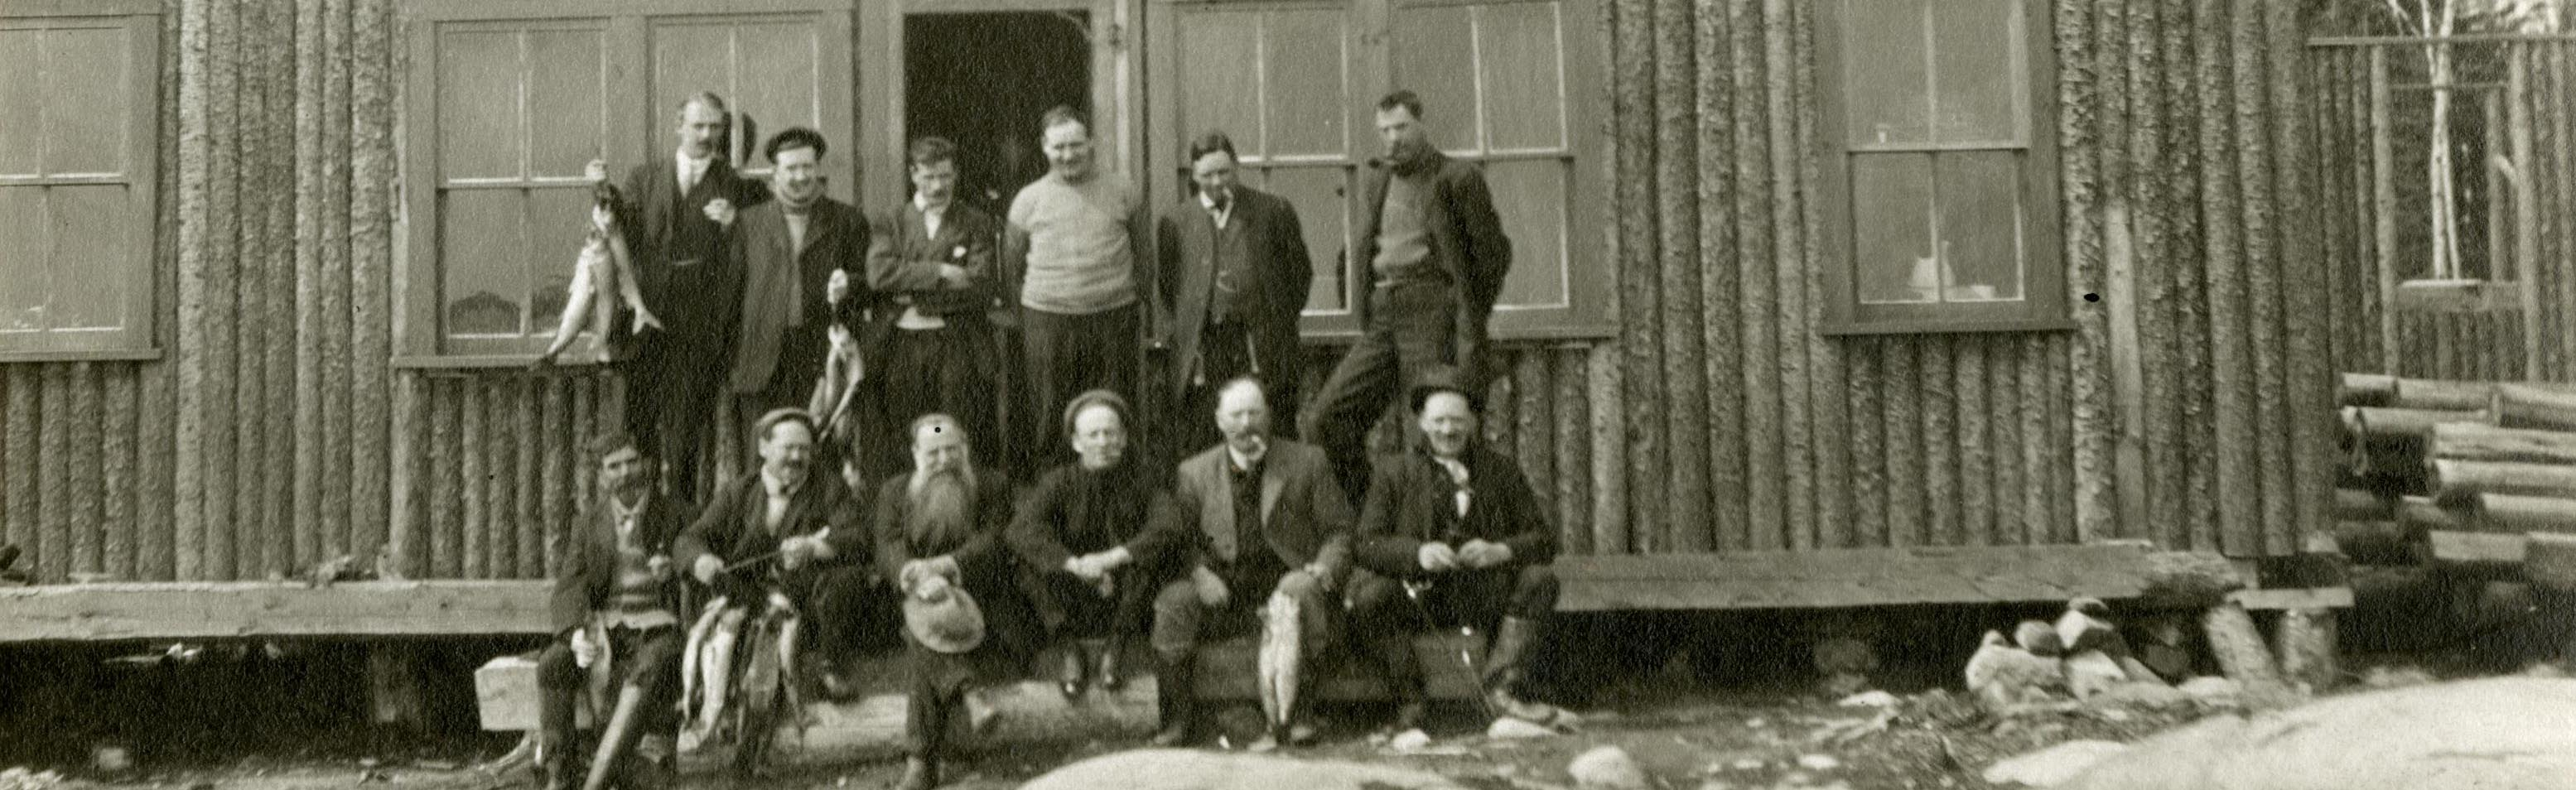 City Clerk's Department fishing trip, ca.1900